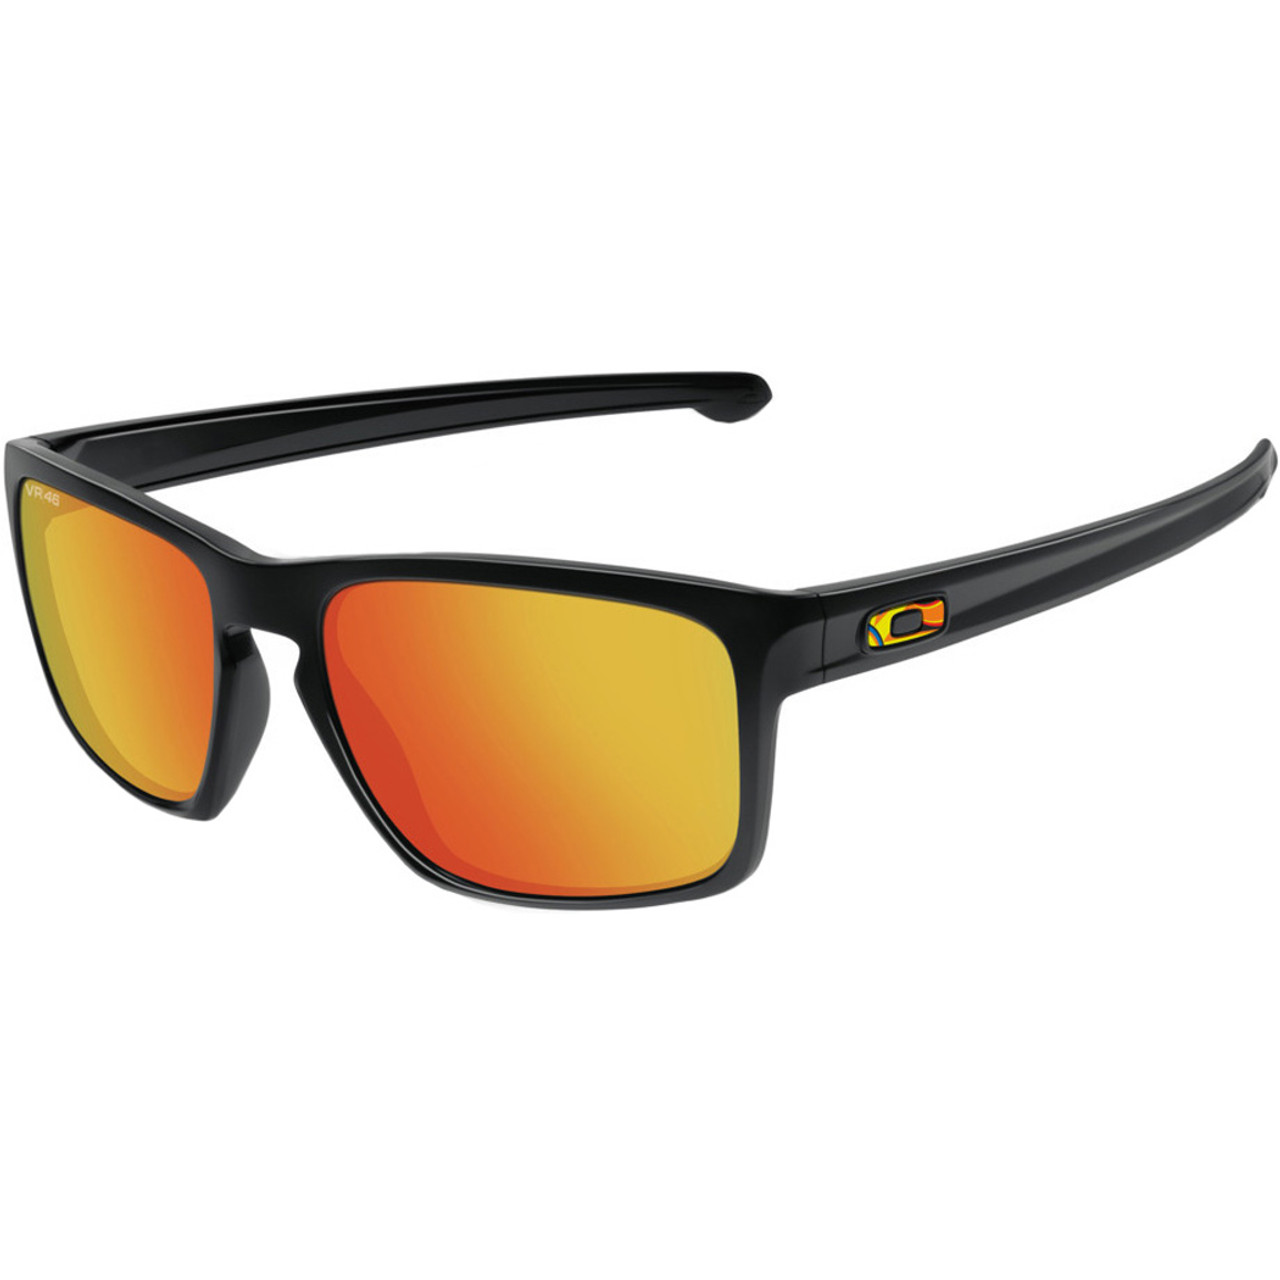 dbe7ea08c0 Oakley Sunglasses - Silver - Black Orange - Surf and Dirt